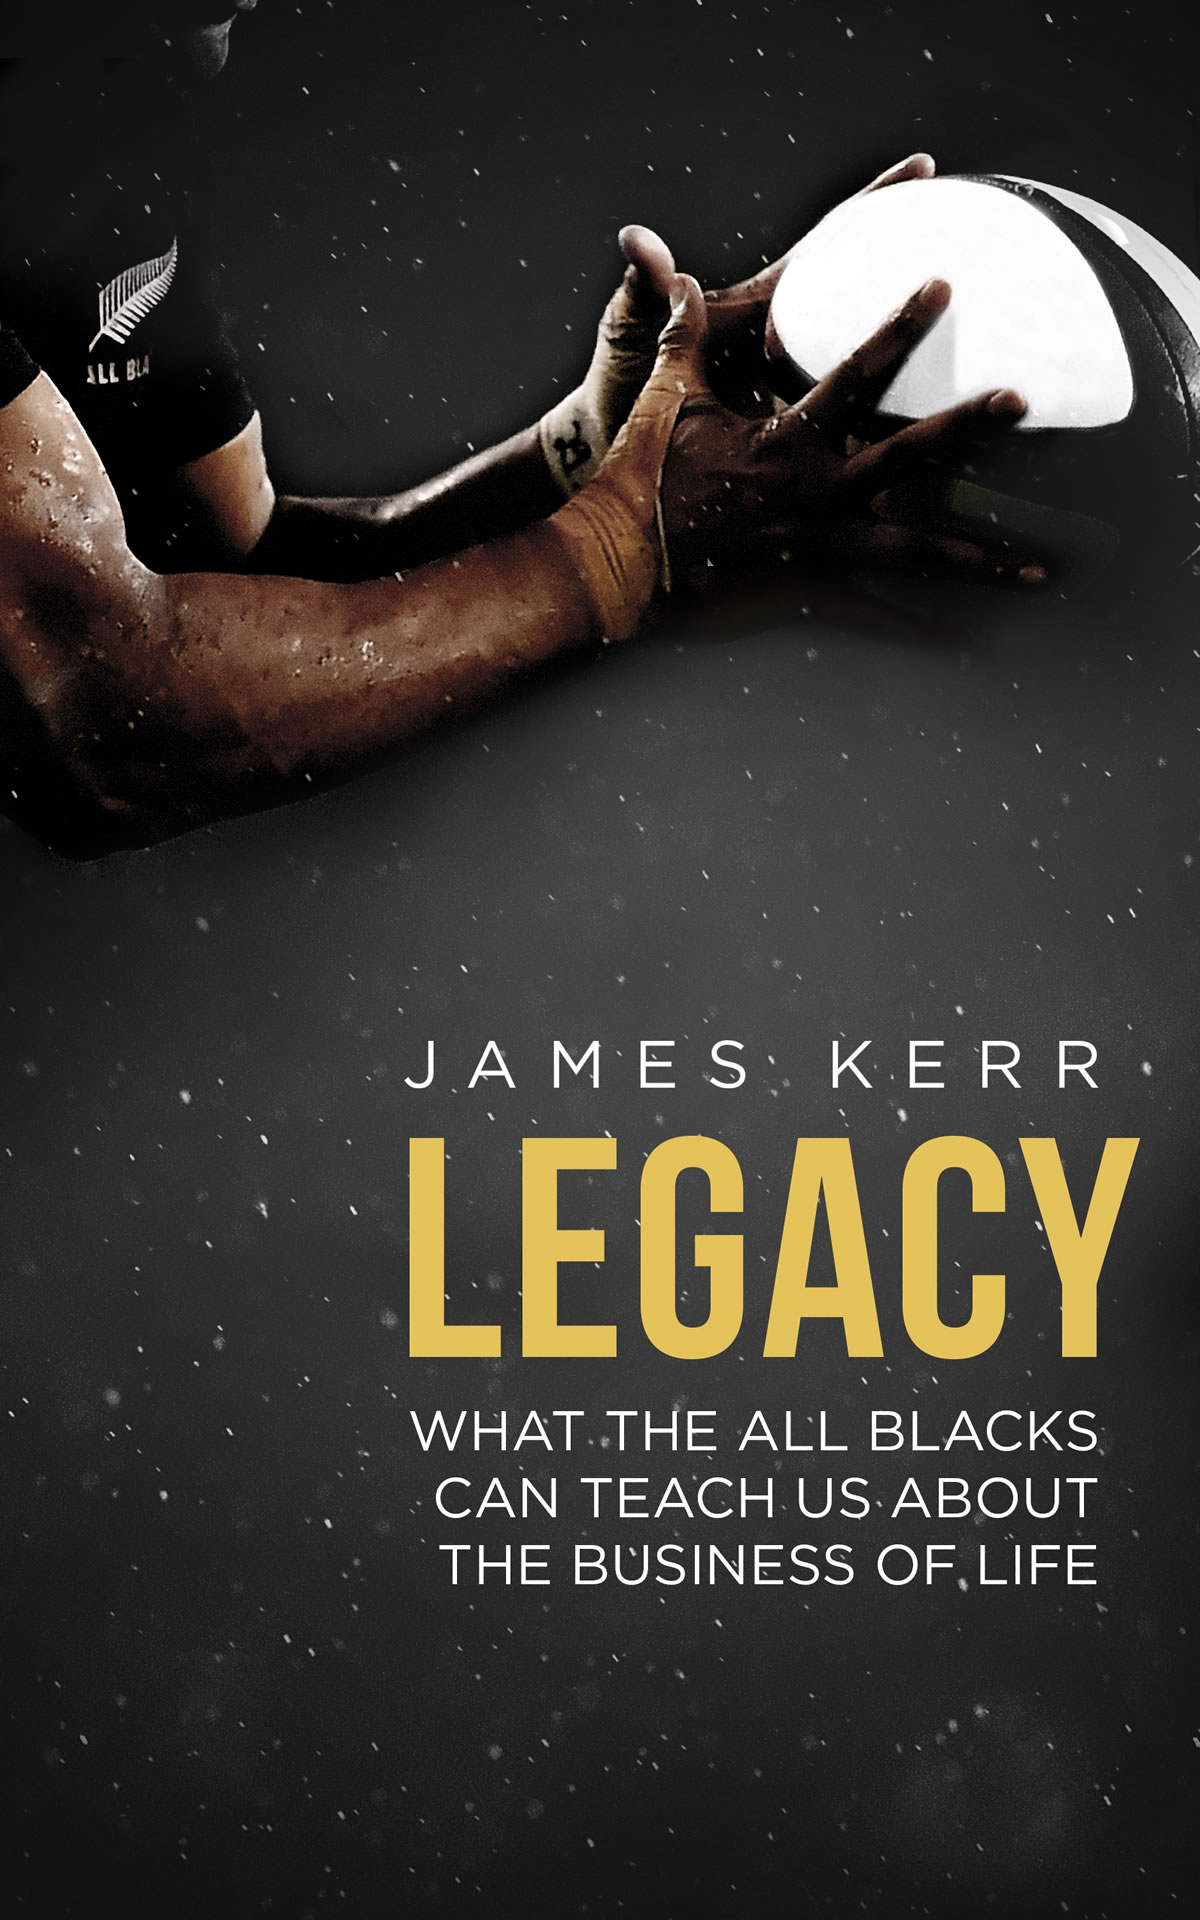 Legacy by James Kerr - image courtesy of Little, Brown Book Group